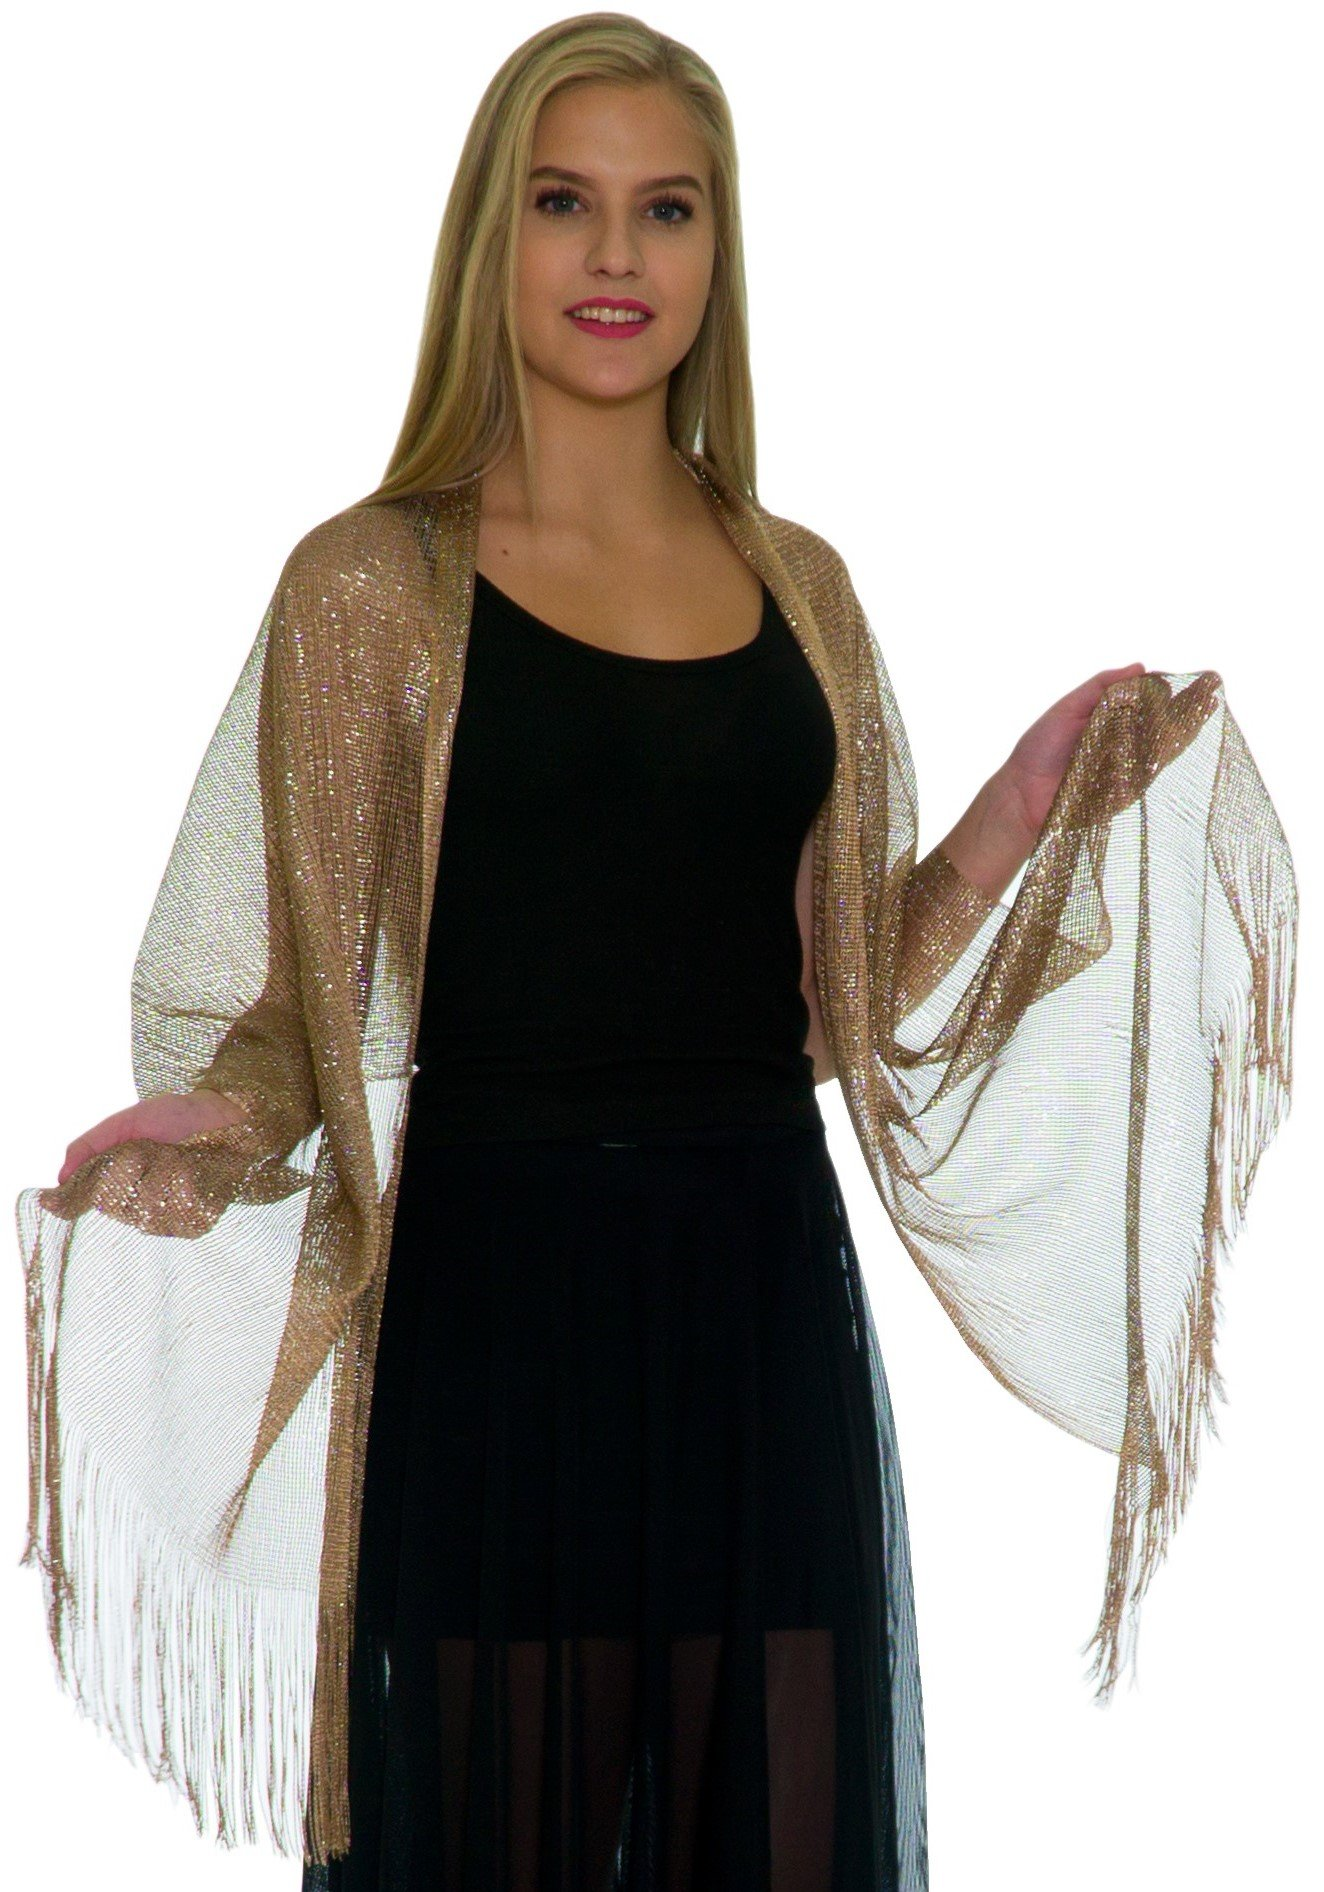 Shawls and Wraps for Evening Dresses - Womens Scarves for Prom, Wedding, Bridal, Party - Scarfs for Women with Fringe - Metallic Gold Scarf by Petal Rose by Petal Rose